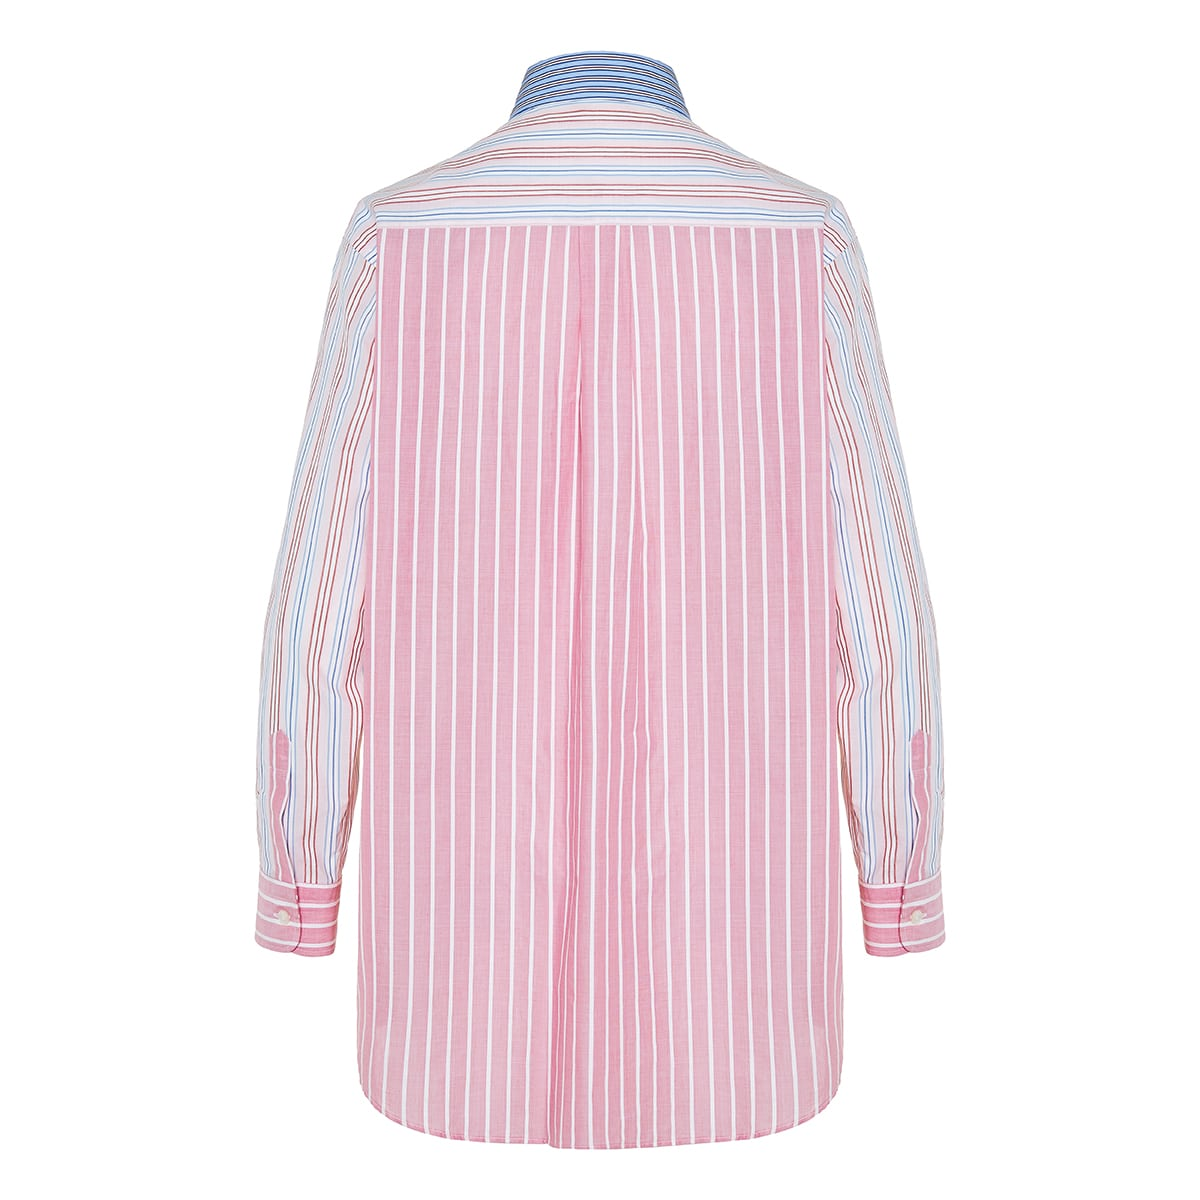 Oversized patchwork striped shirt